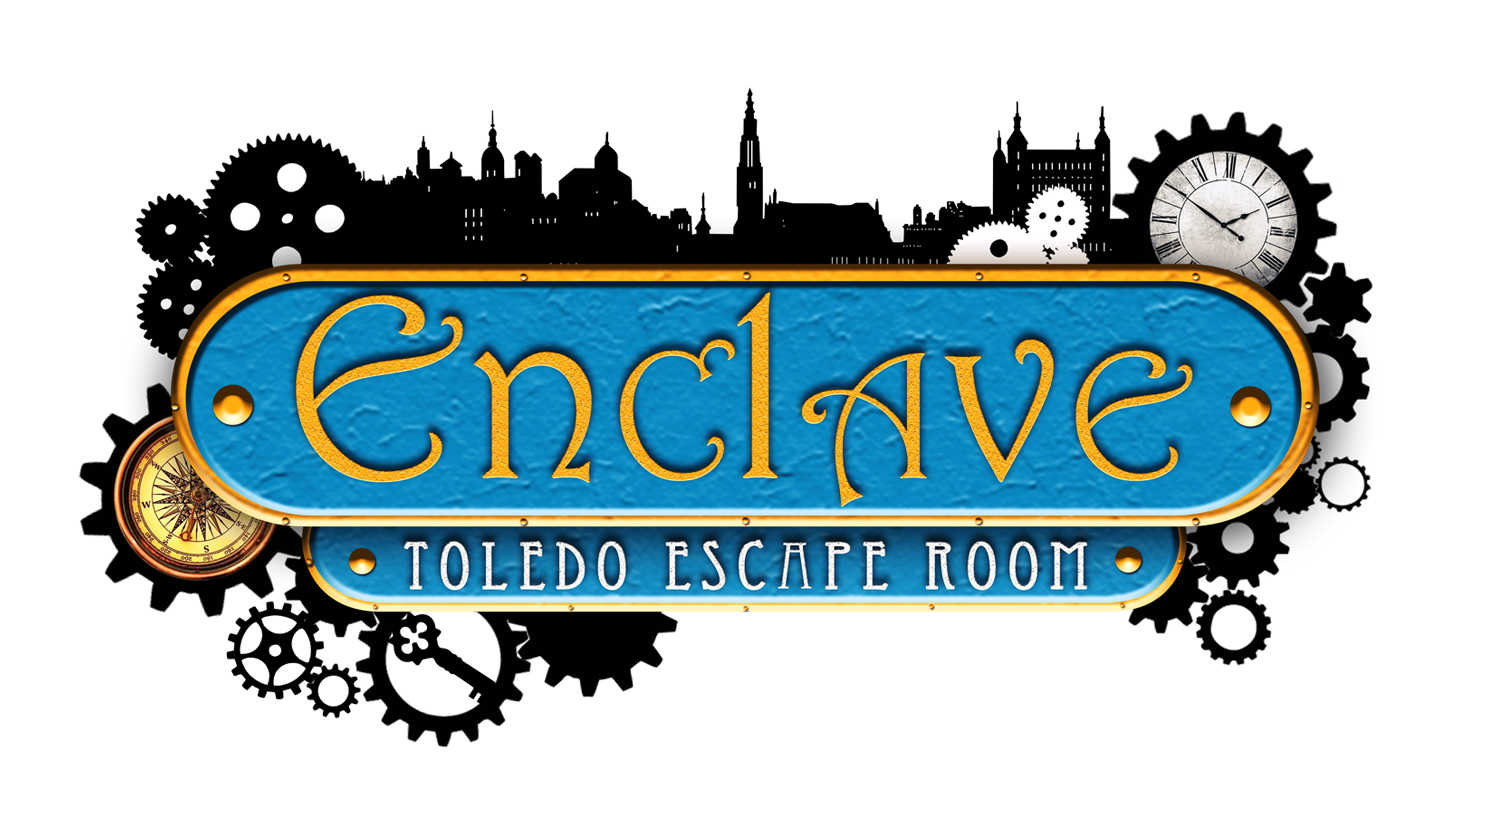 Toledo Escape Room ENCLAVE